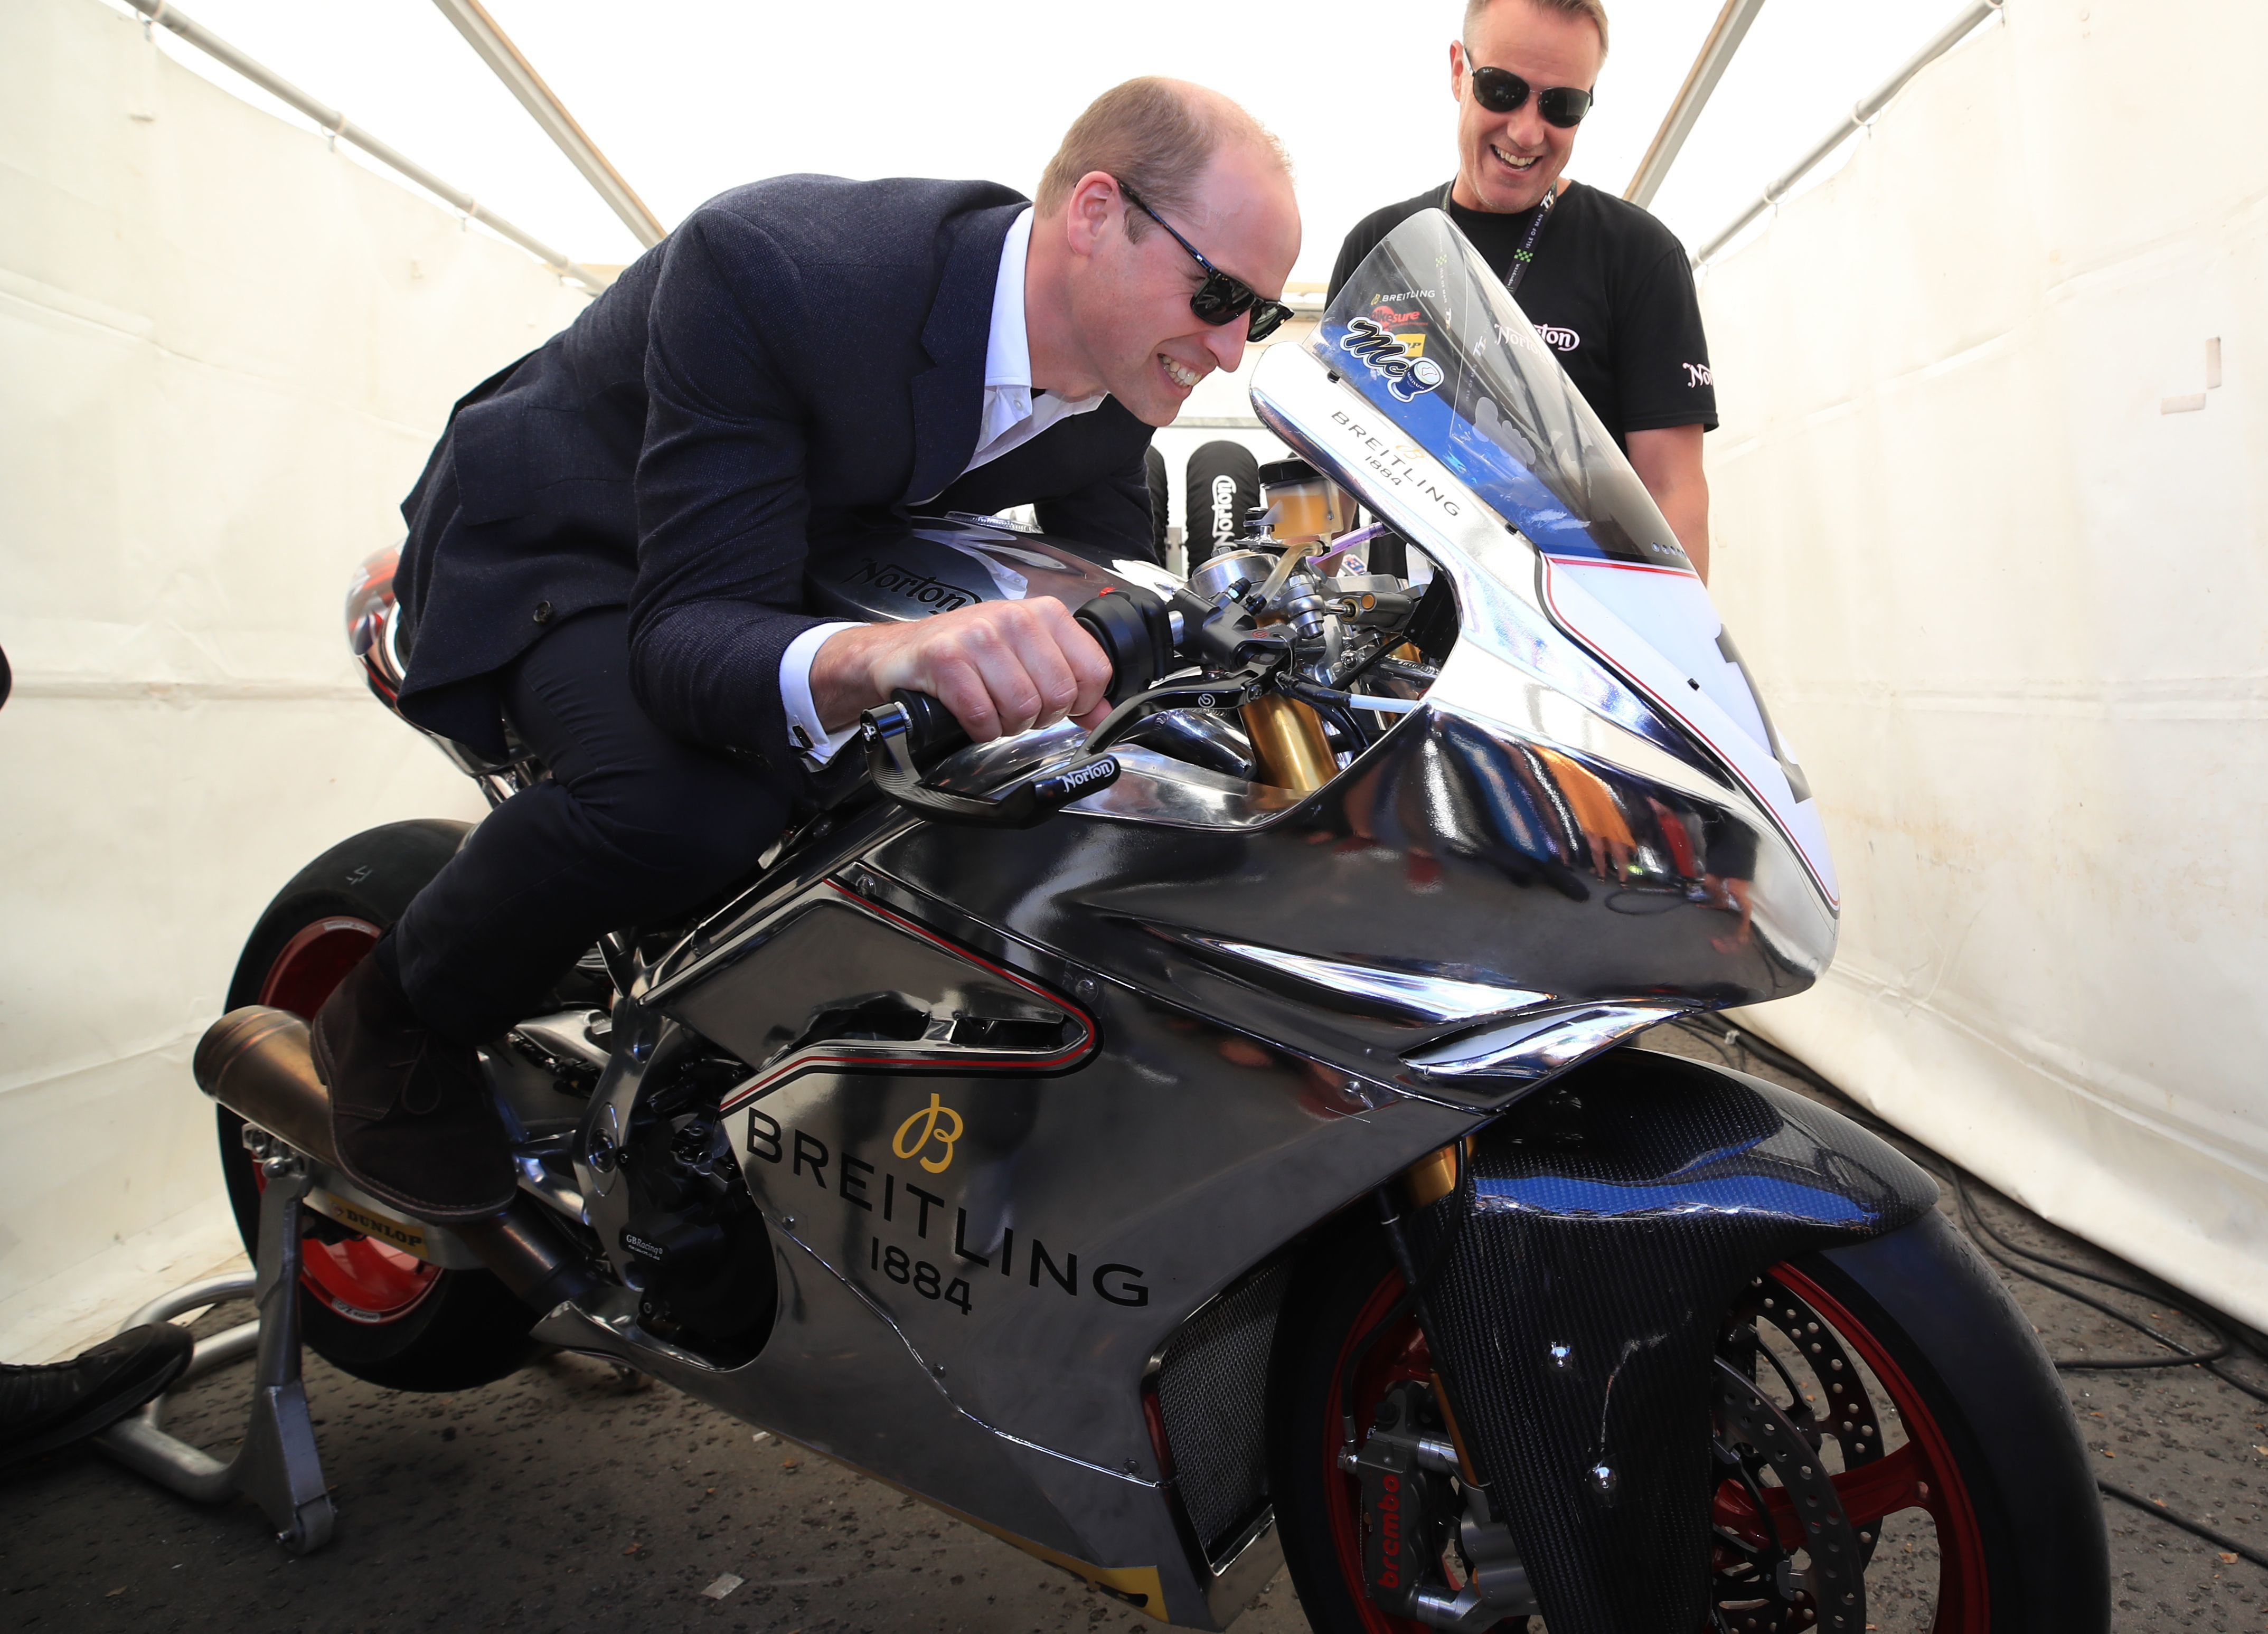 Prince William tries out a motorbike at the Isle of Man TT during his visit to the island on June 6, 2018.